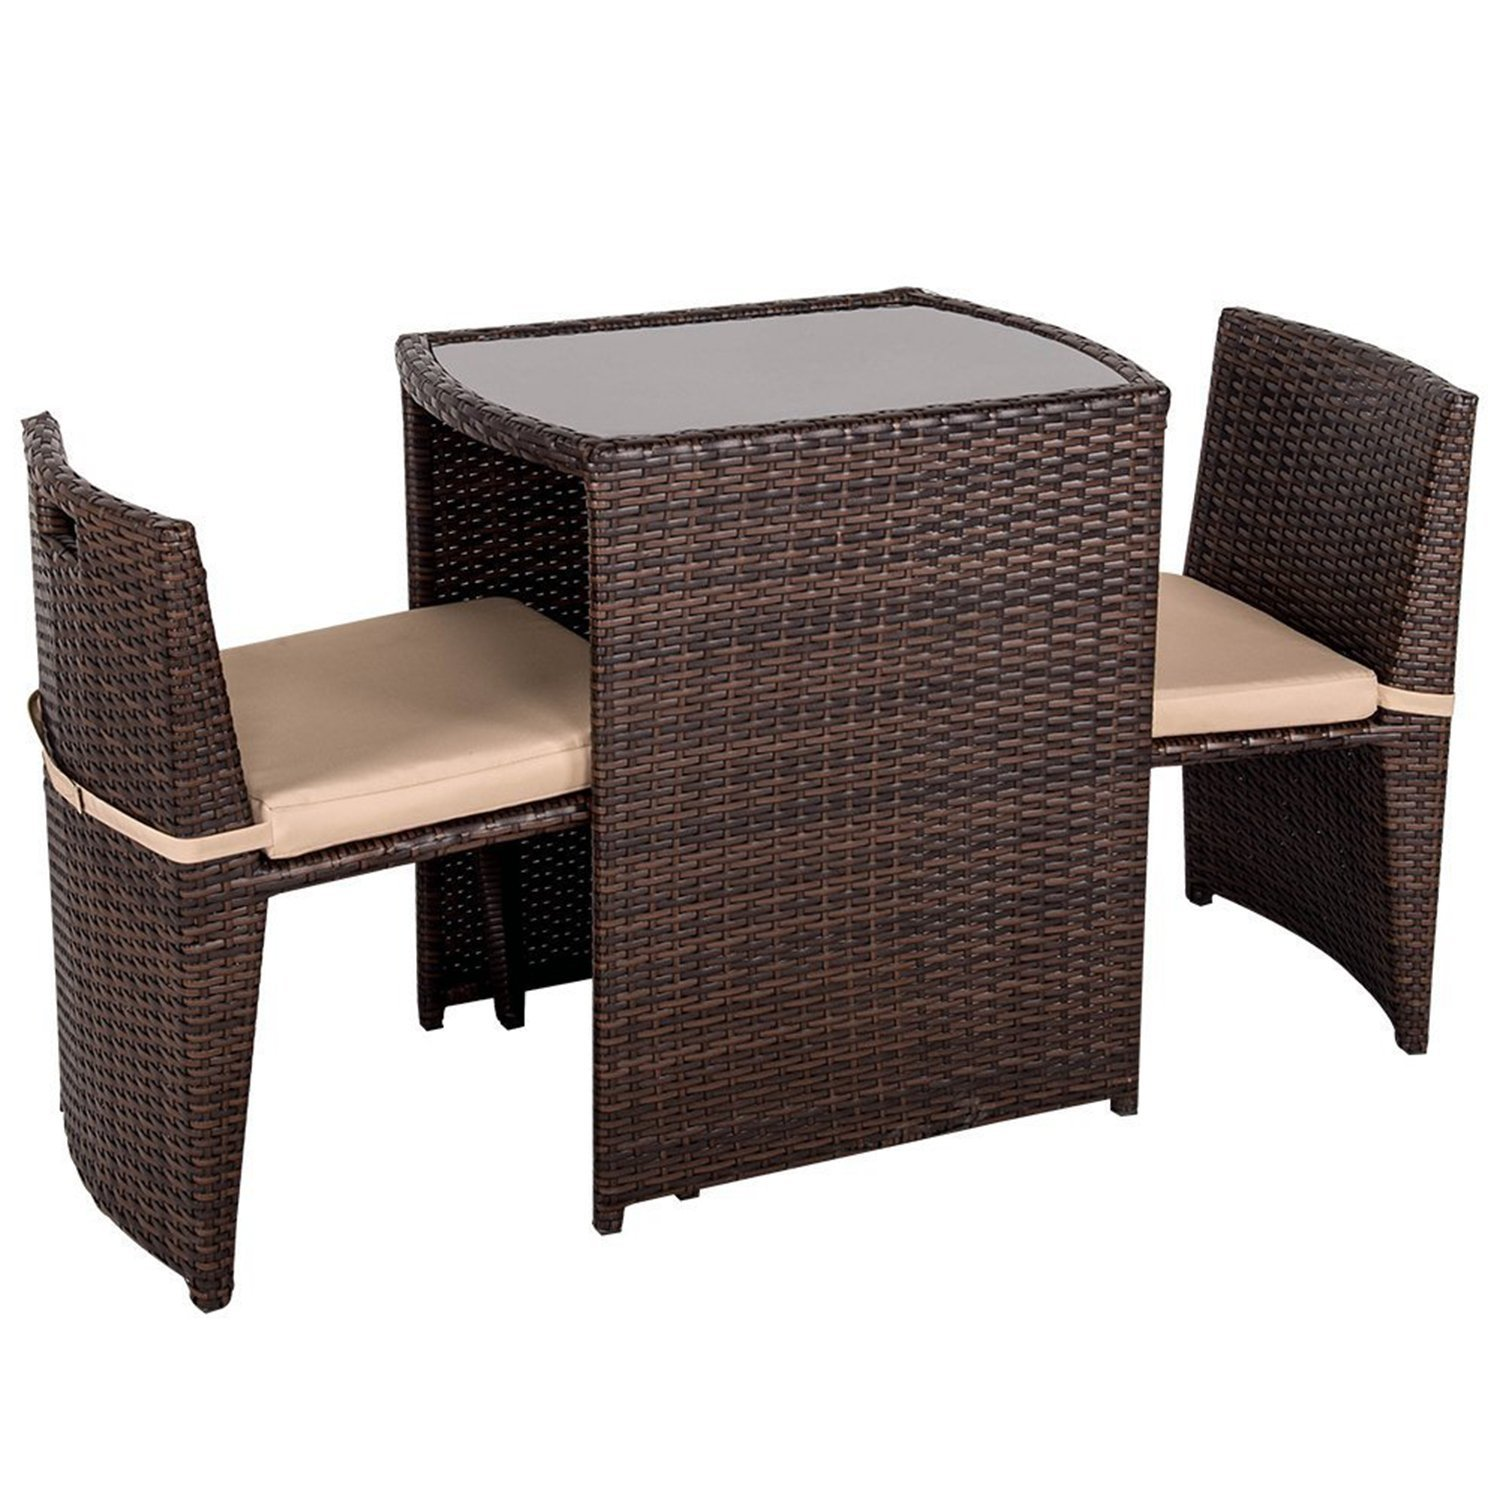 Outdoor Patio Furniture Set 3 Pieces Wicker Patio Set with Cushions Table & Two Chairs Brown Finish and Tan Cushions Outdoor Furniture Lawn Rattan Garden Set